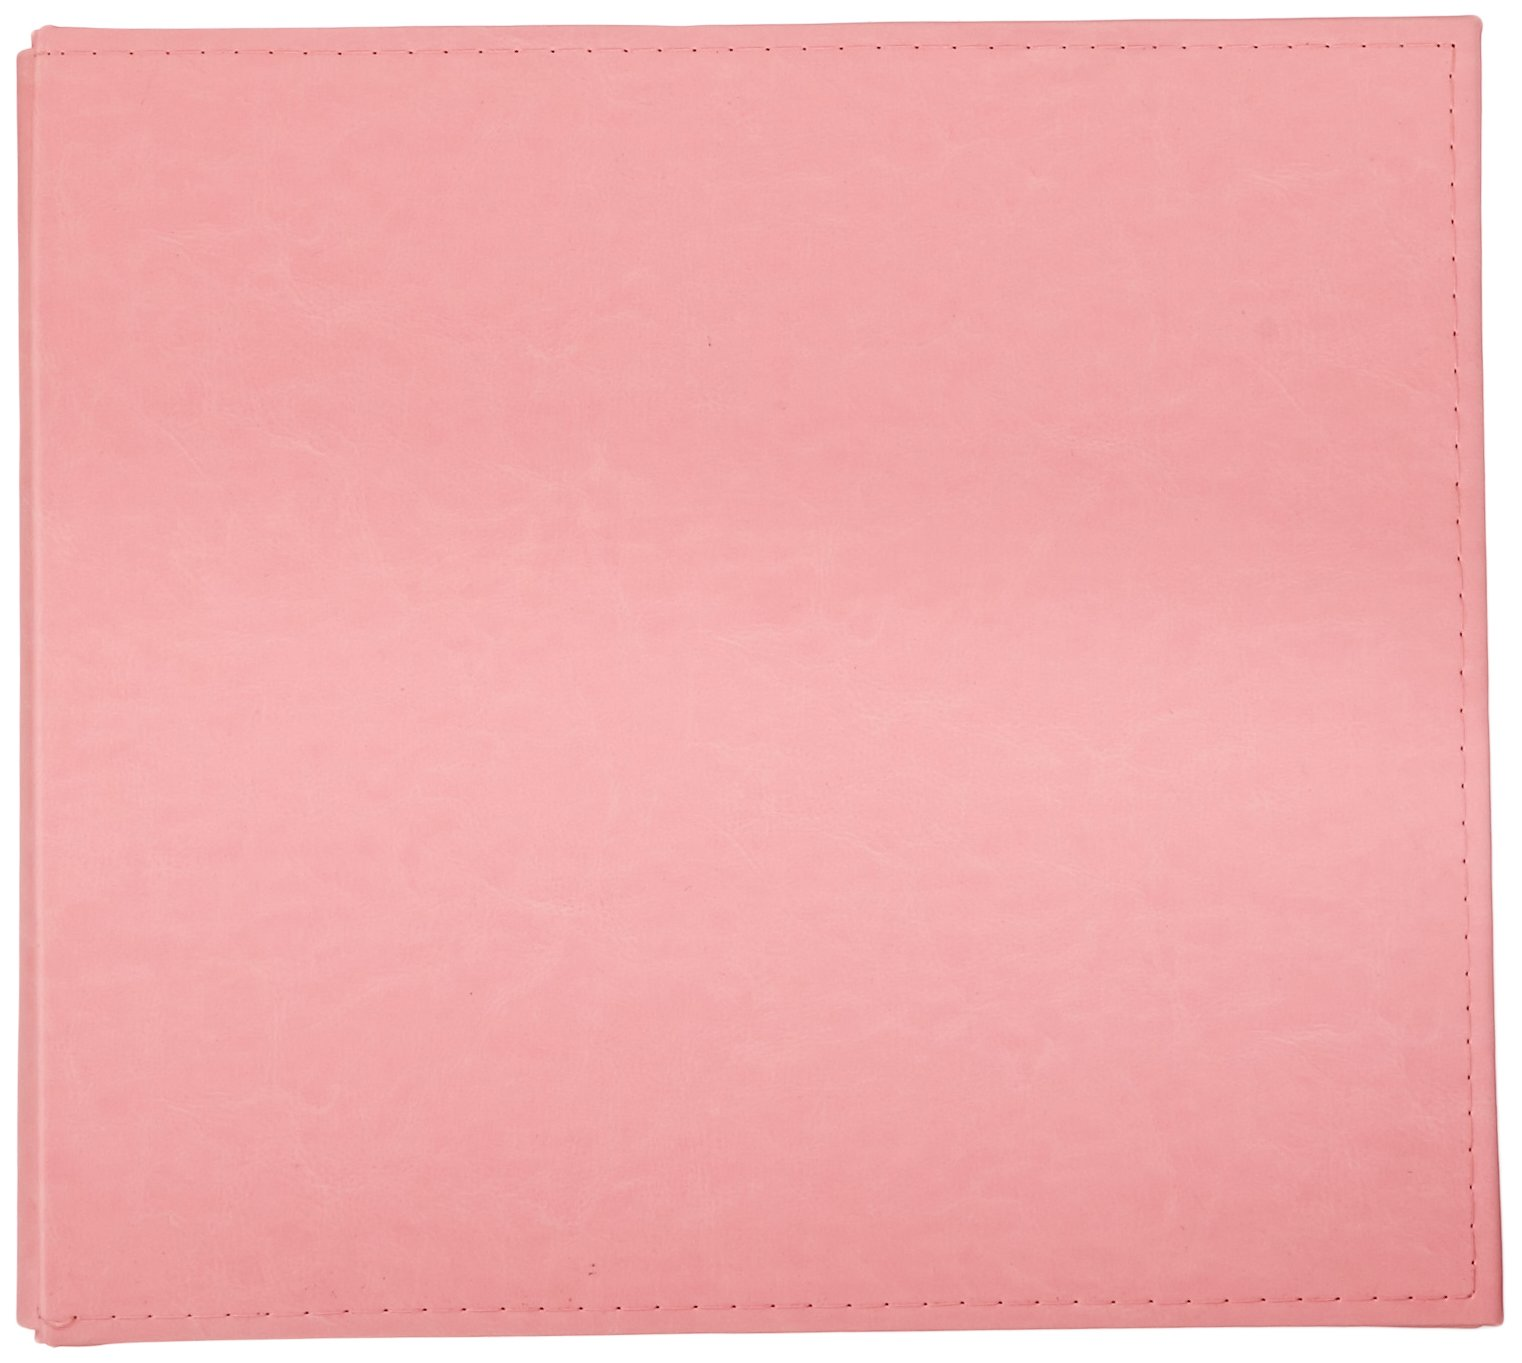 We R Memory Keepers Classic Leather Post Album, 12 by 12-Inch, Pretty Pink